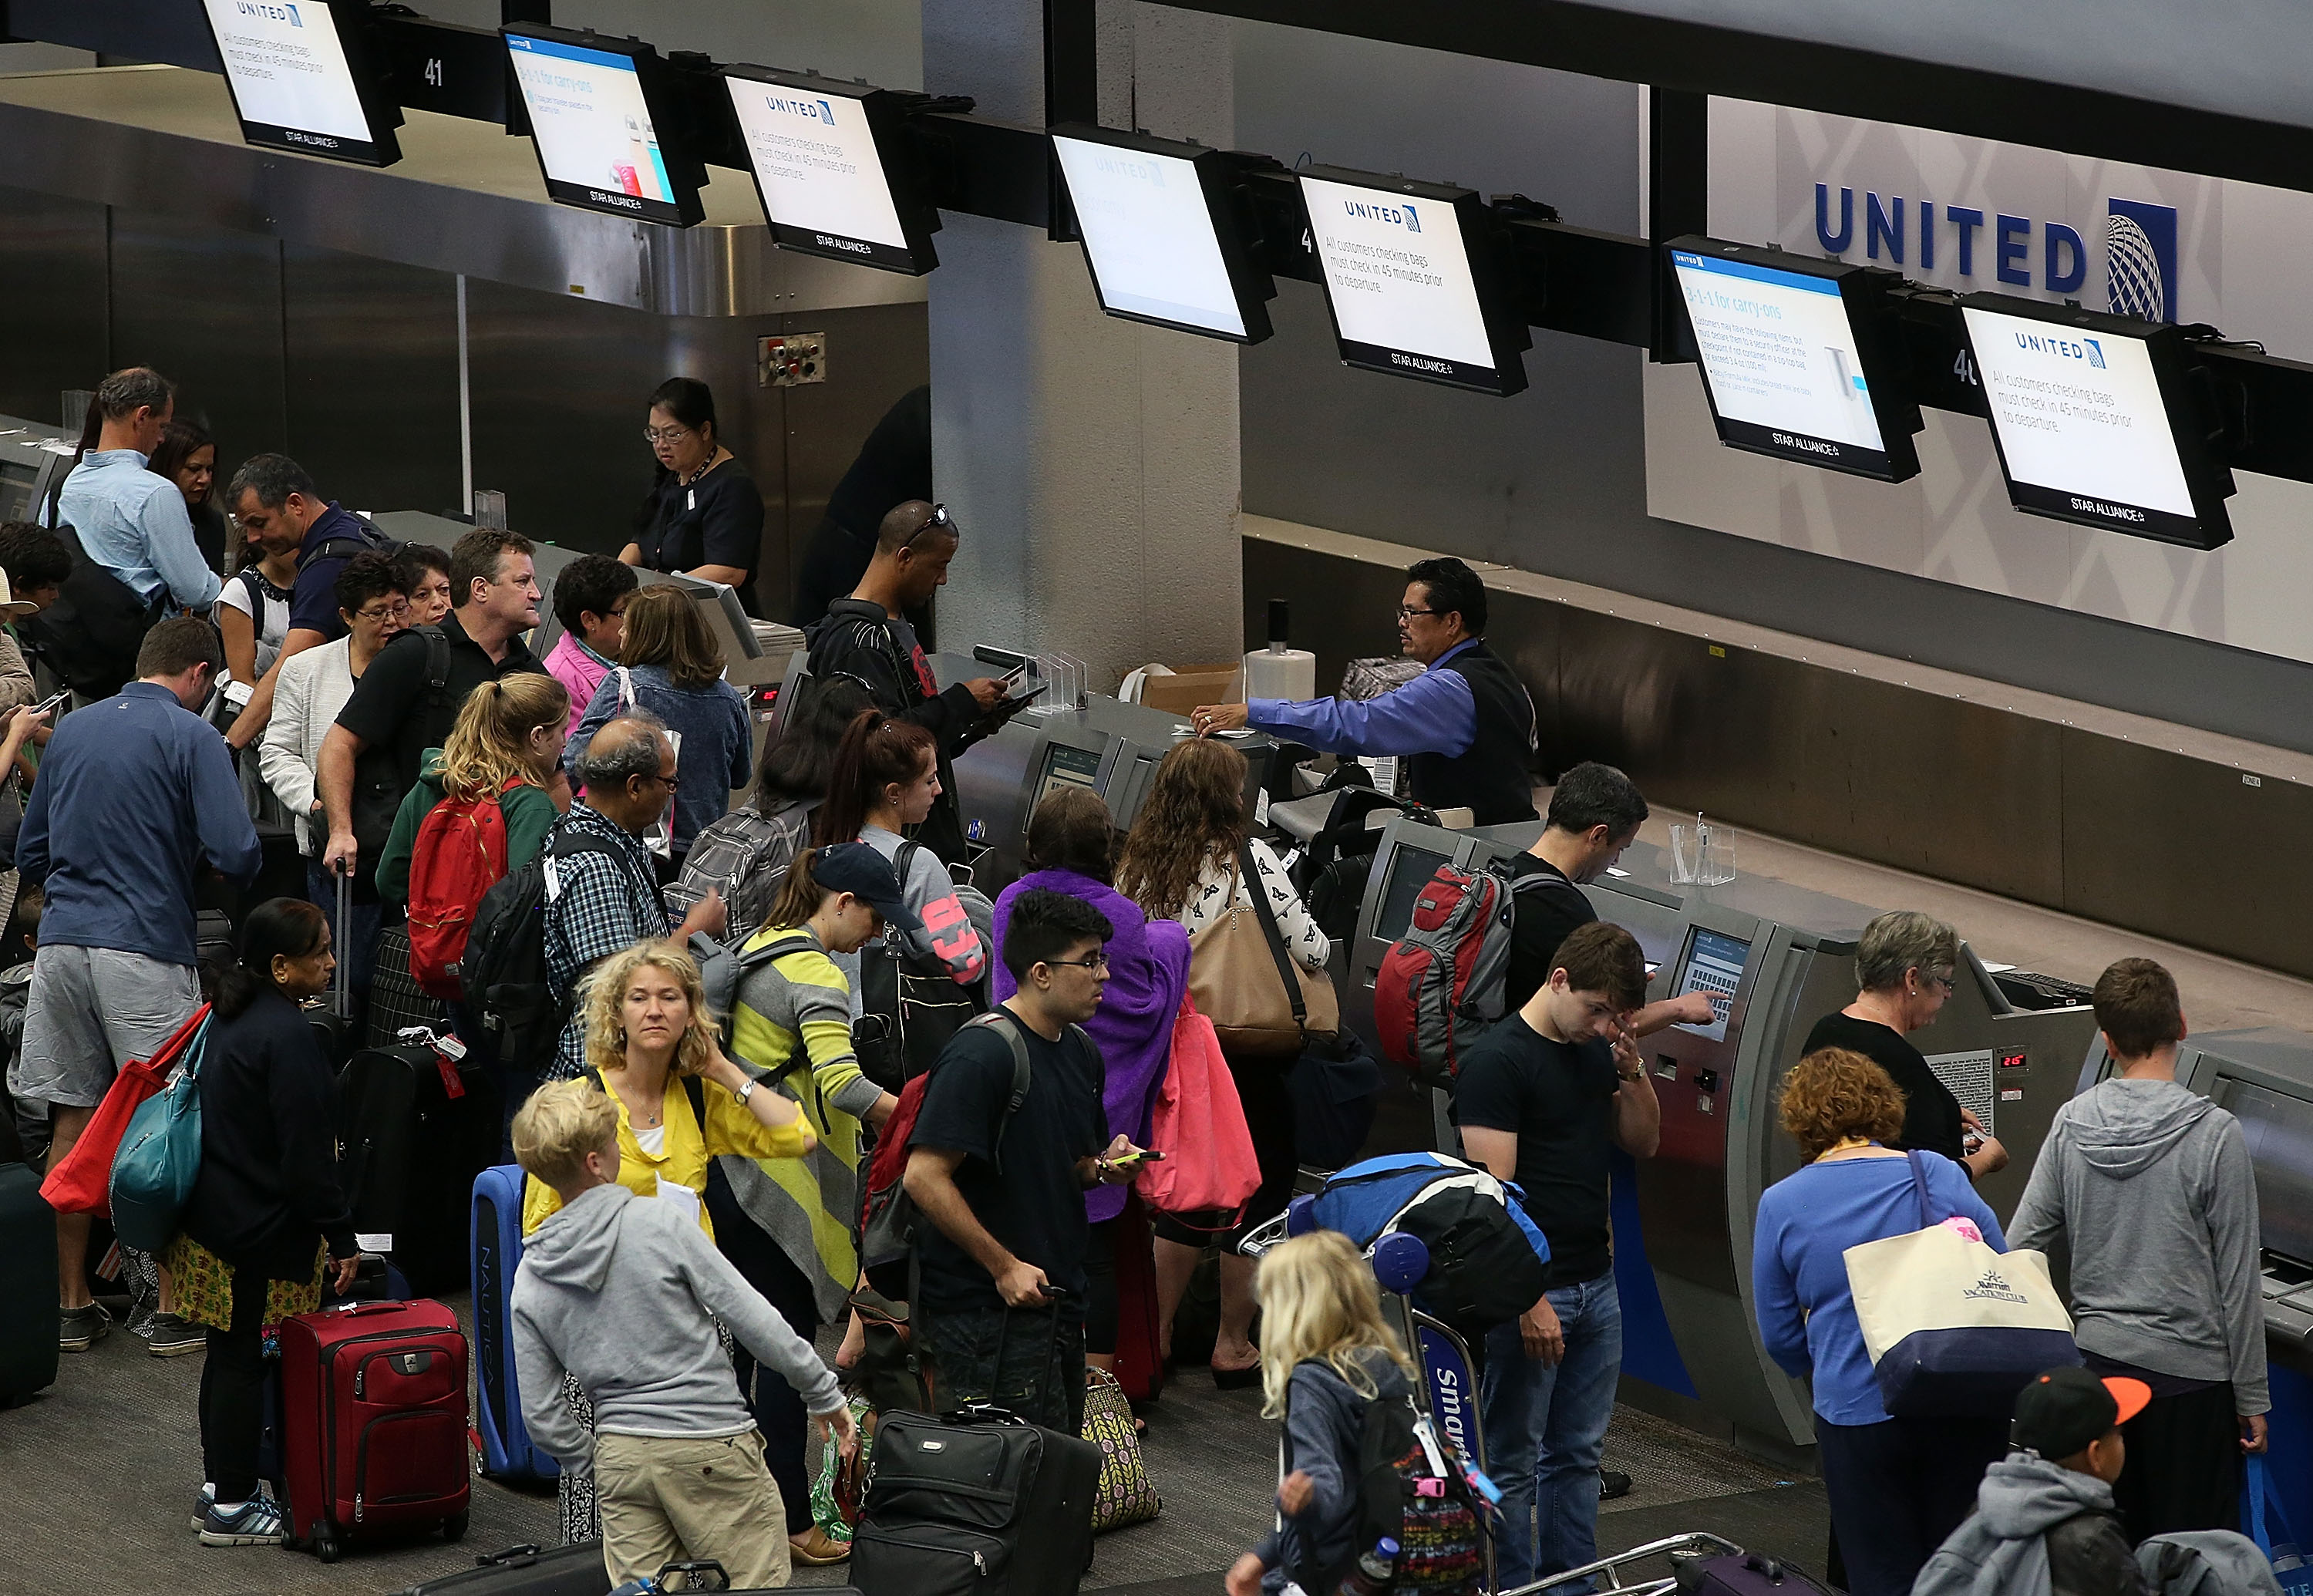 United Airlines passengers wait in line to check in for flights at San Francisco International Airport on Wednesday. (Getty)